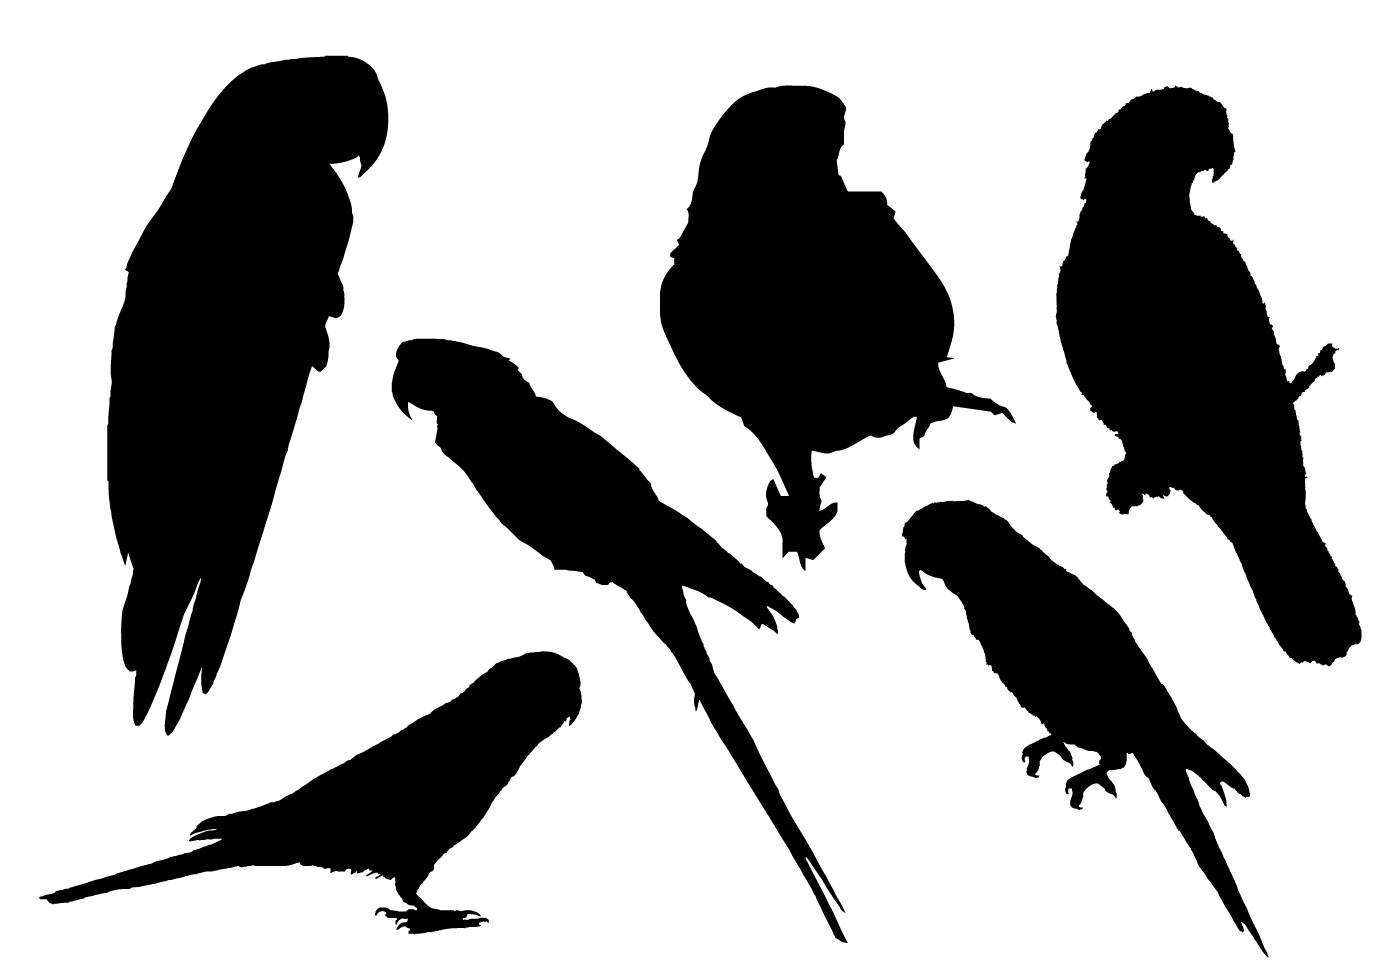 parrot silhouette bird flying silhouette free image on pixabay parrot silhouette